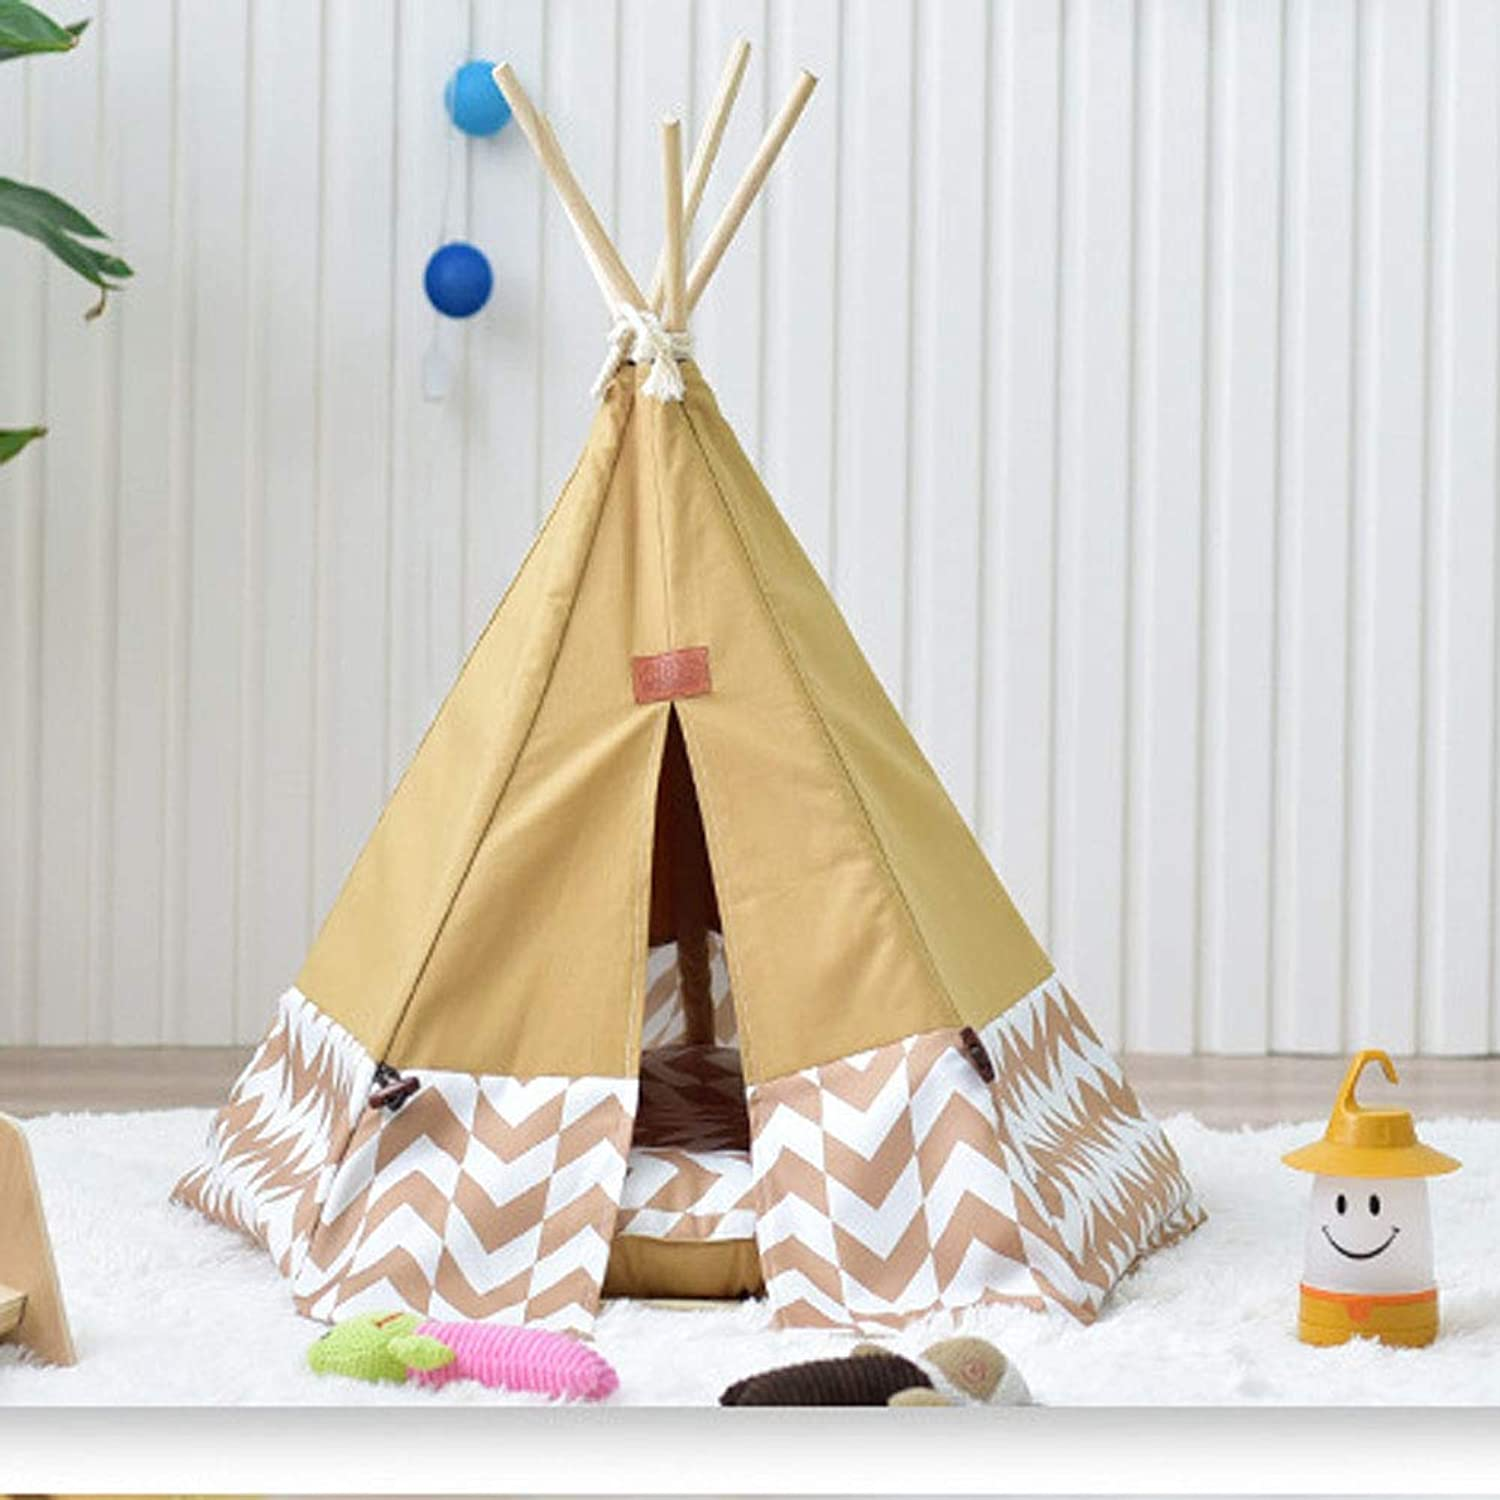 Pet Teepee House Tents Wood Canvas Tipi Fold Away Tent Furniture Cat Bed Litter Kennel Removable and Washable Small Nest Medium Large Dog Multi color Options,Brown,Small(withoutpad)